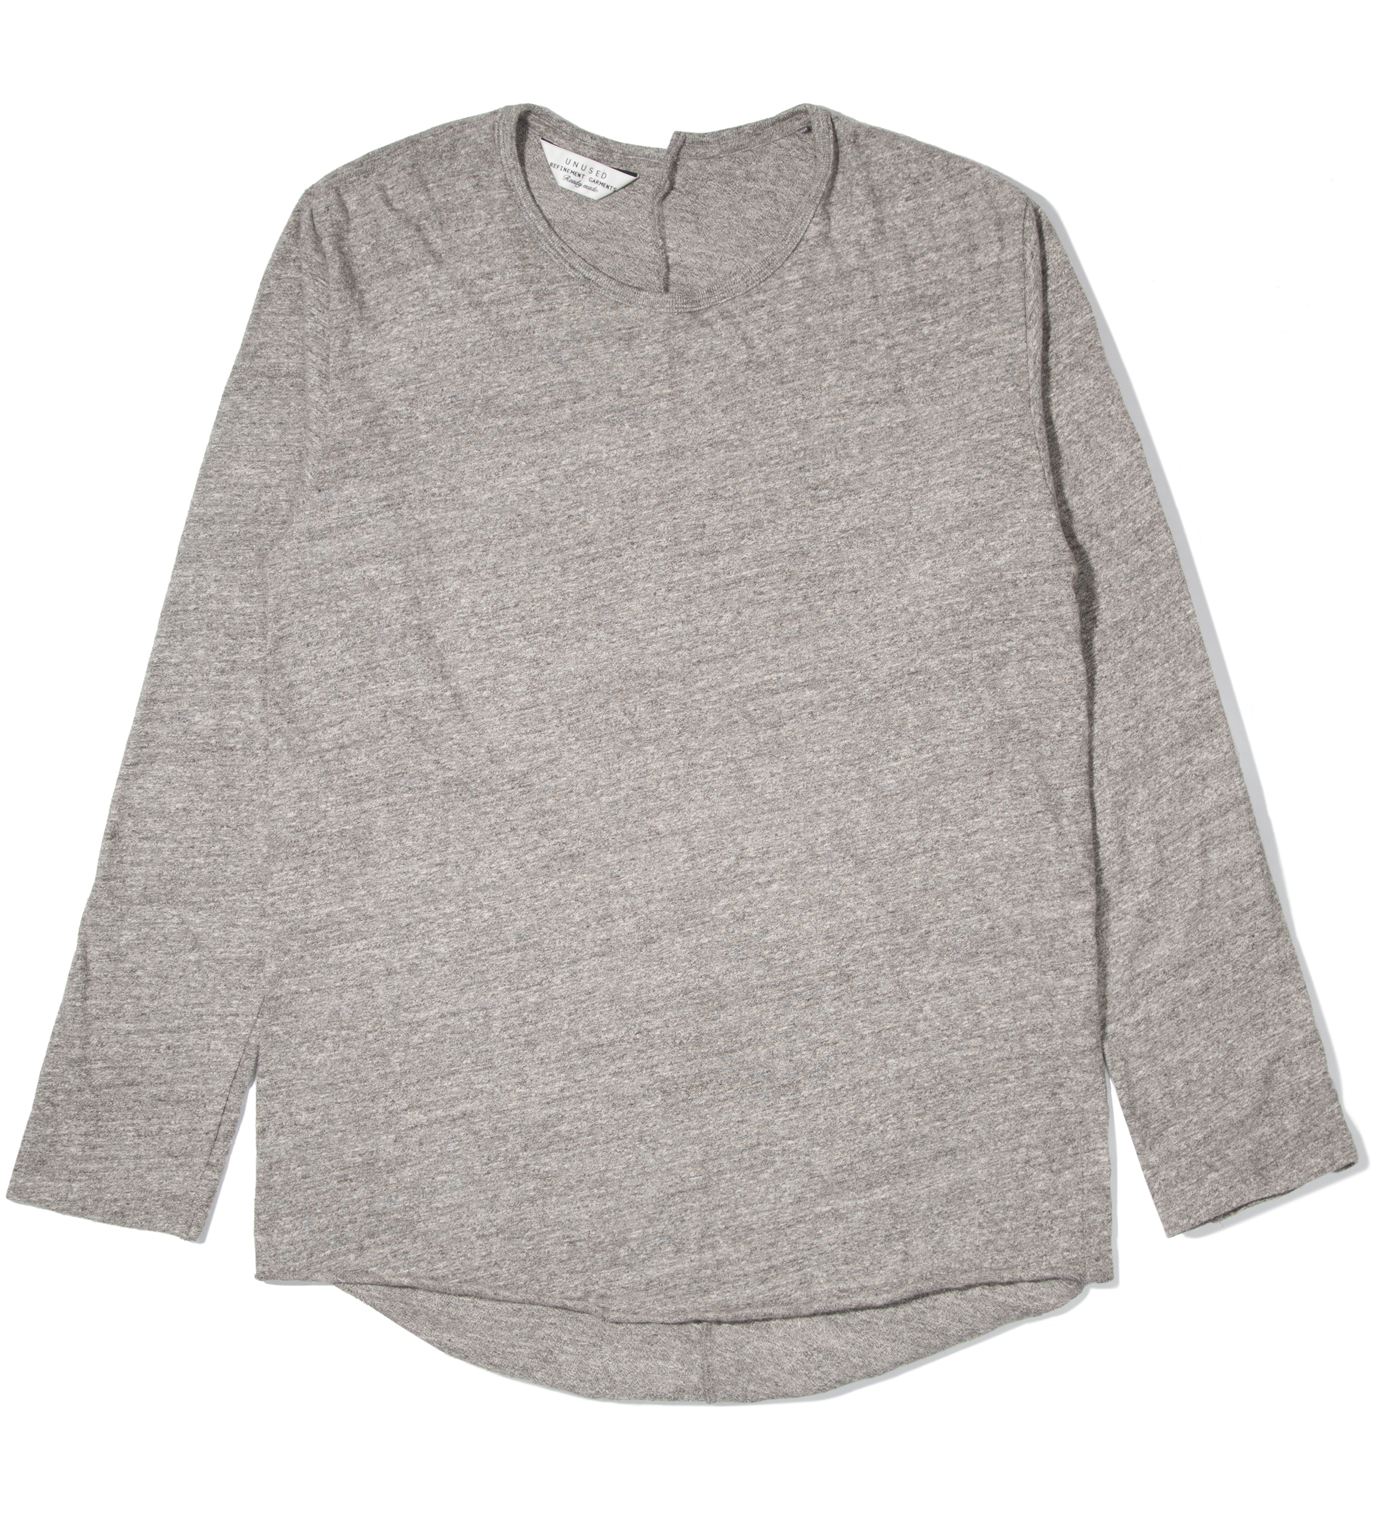 UNUSED Heather Grey Long Sleeve T-Shirt